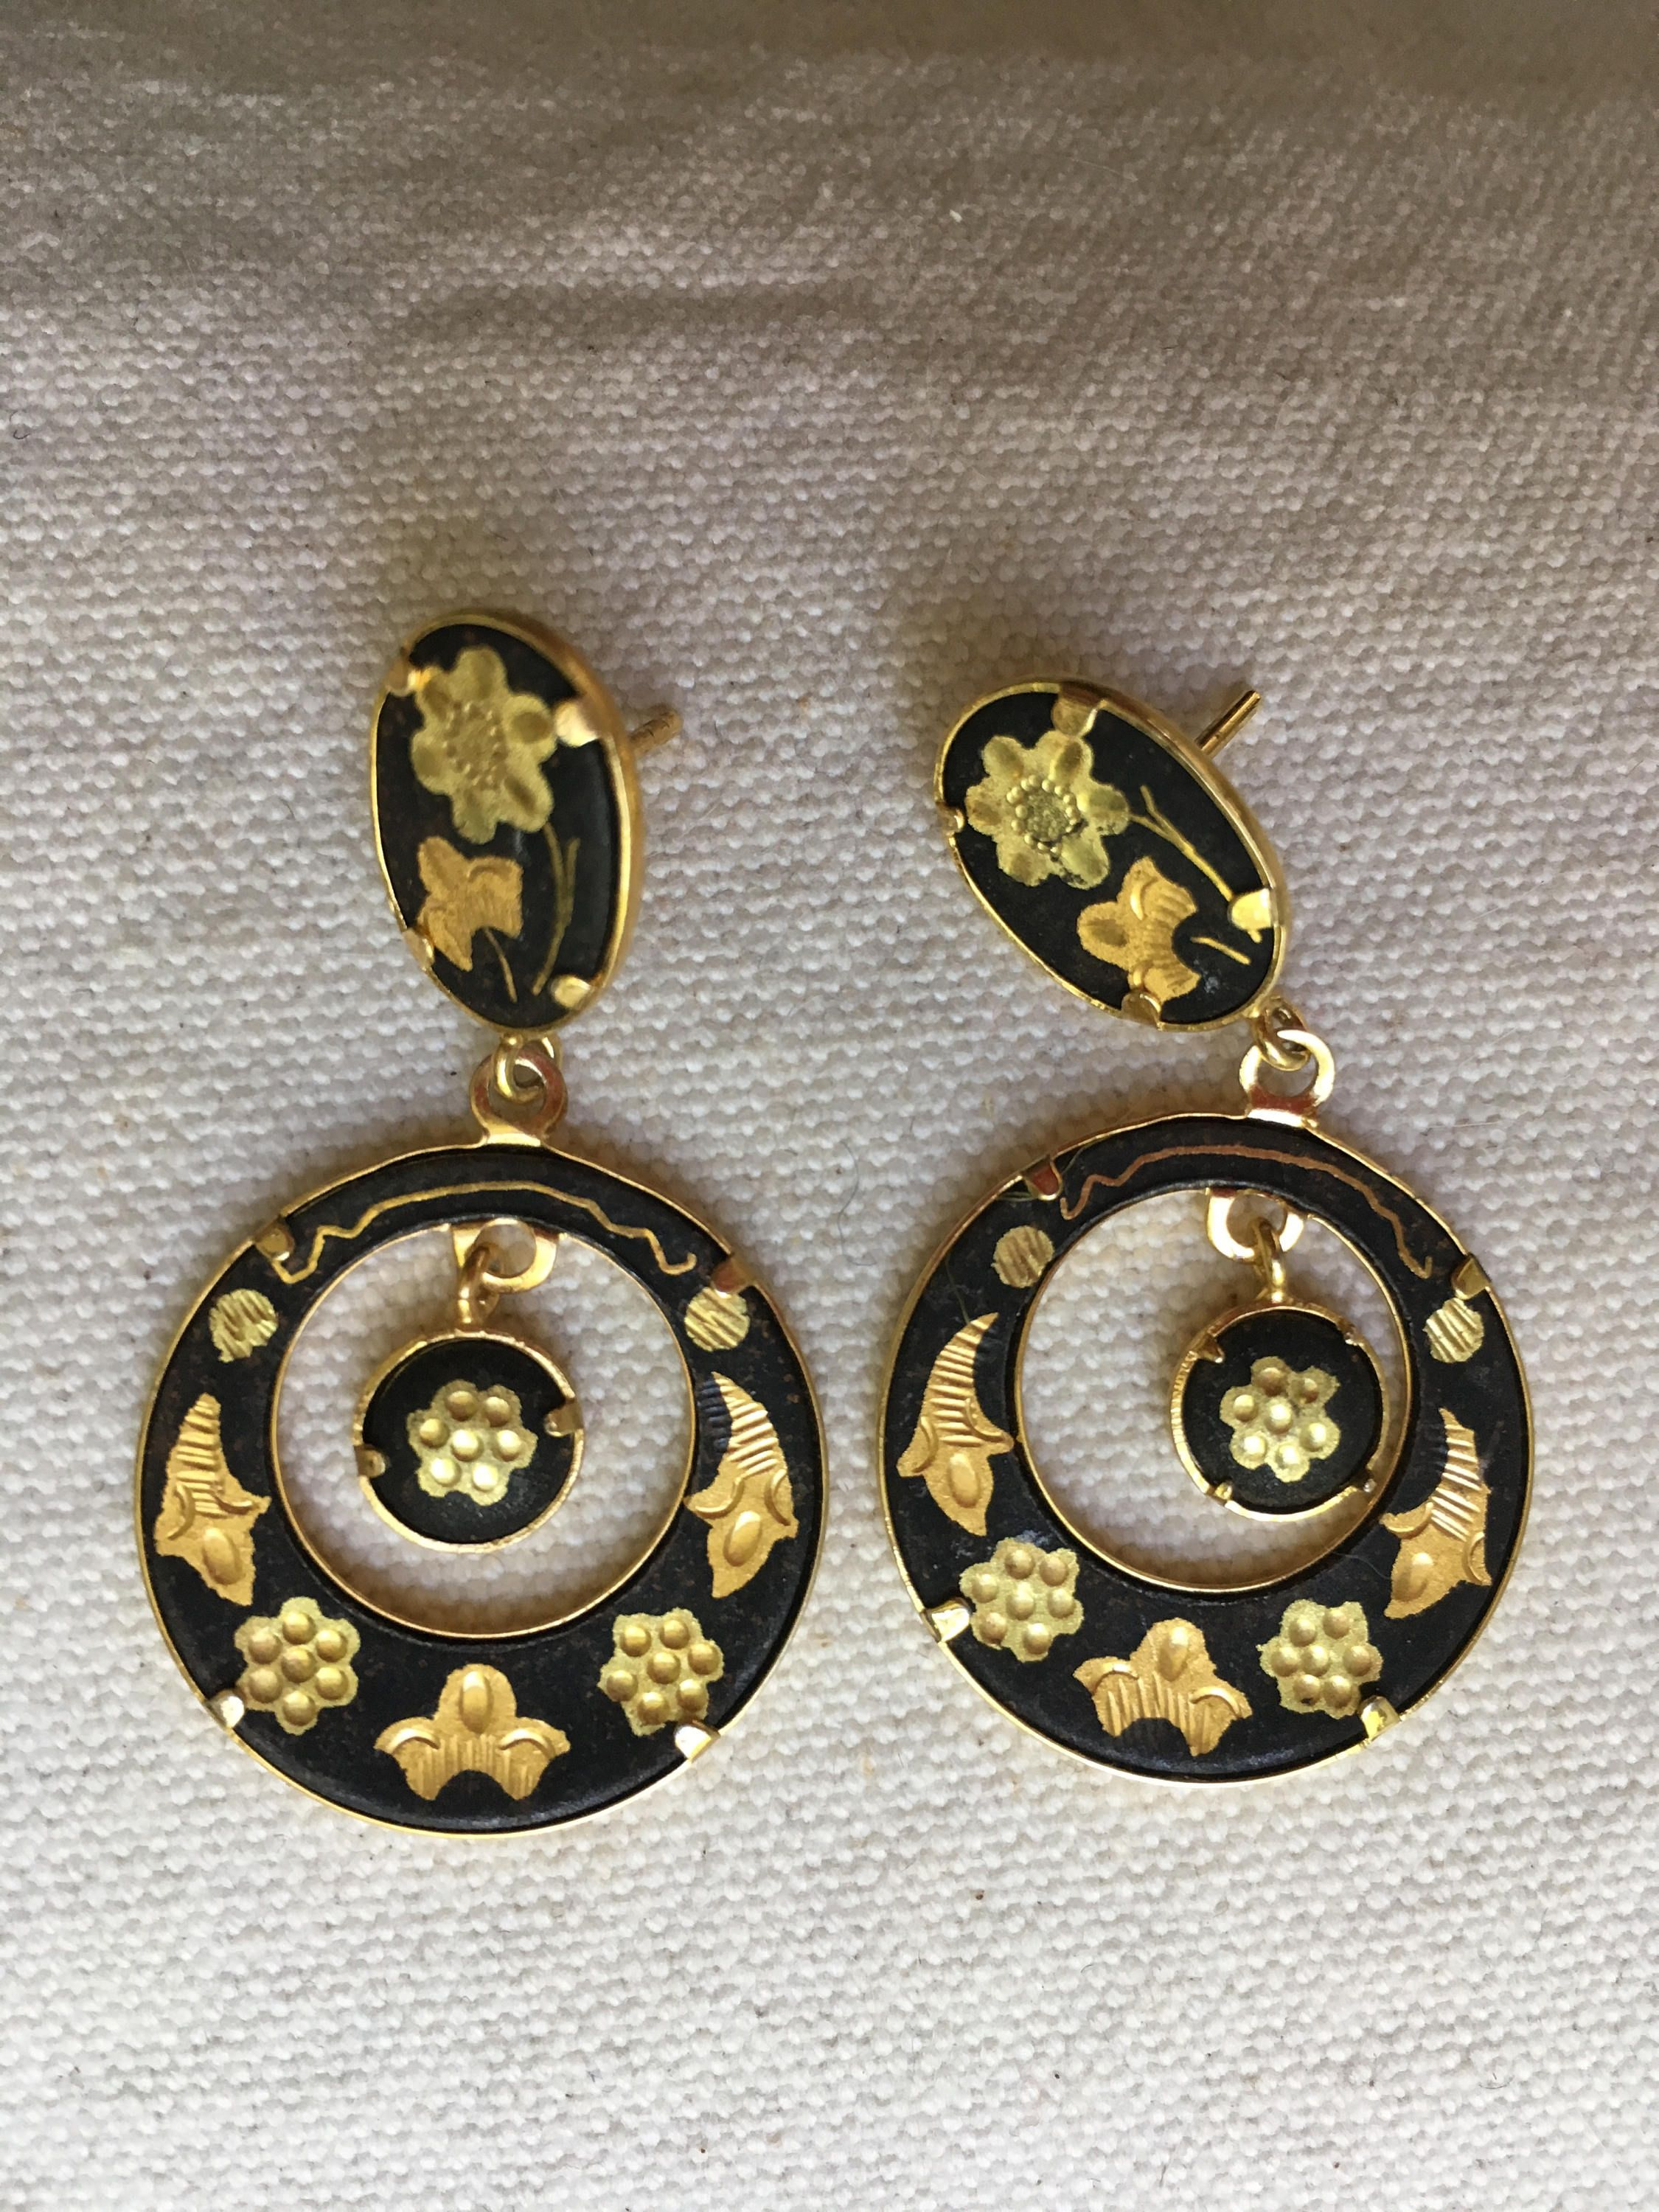 Vintage Damascene Earrings Spanish Pierced Toledo Jewelry